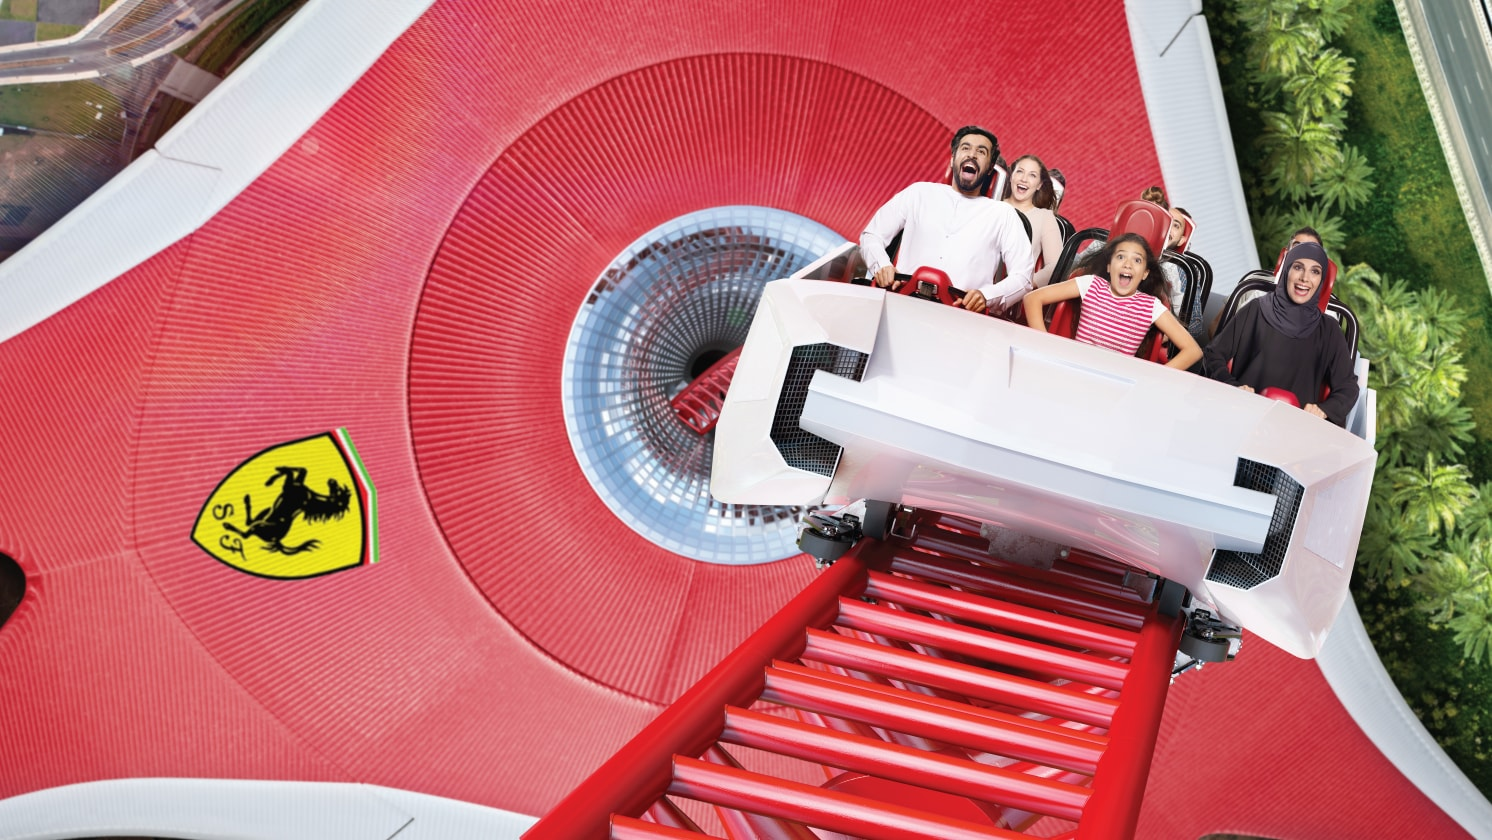 Rides And Attractions Ferrari World Abu Dhabi